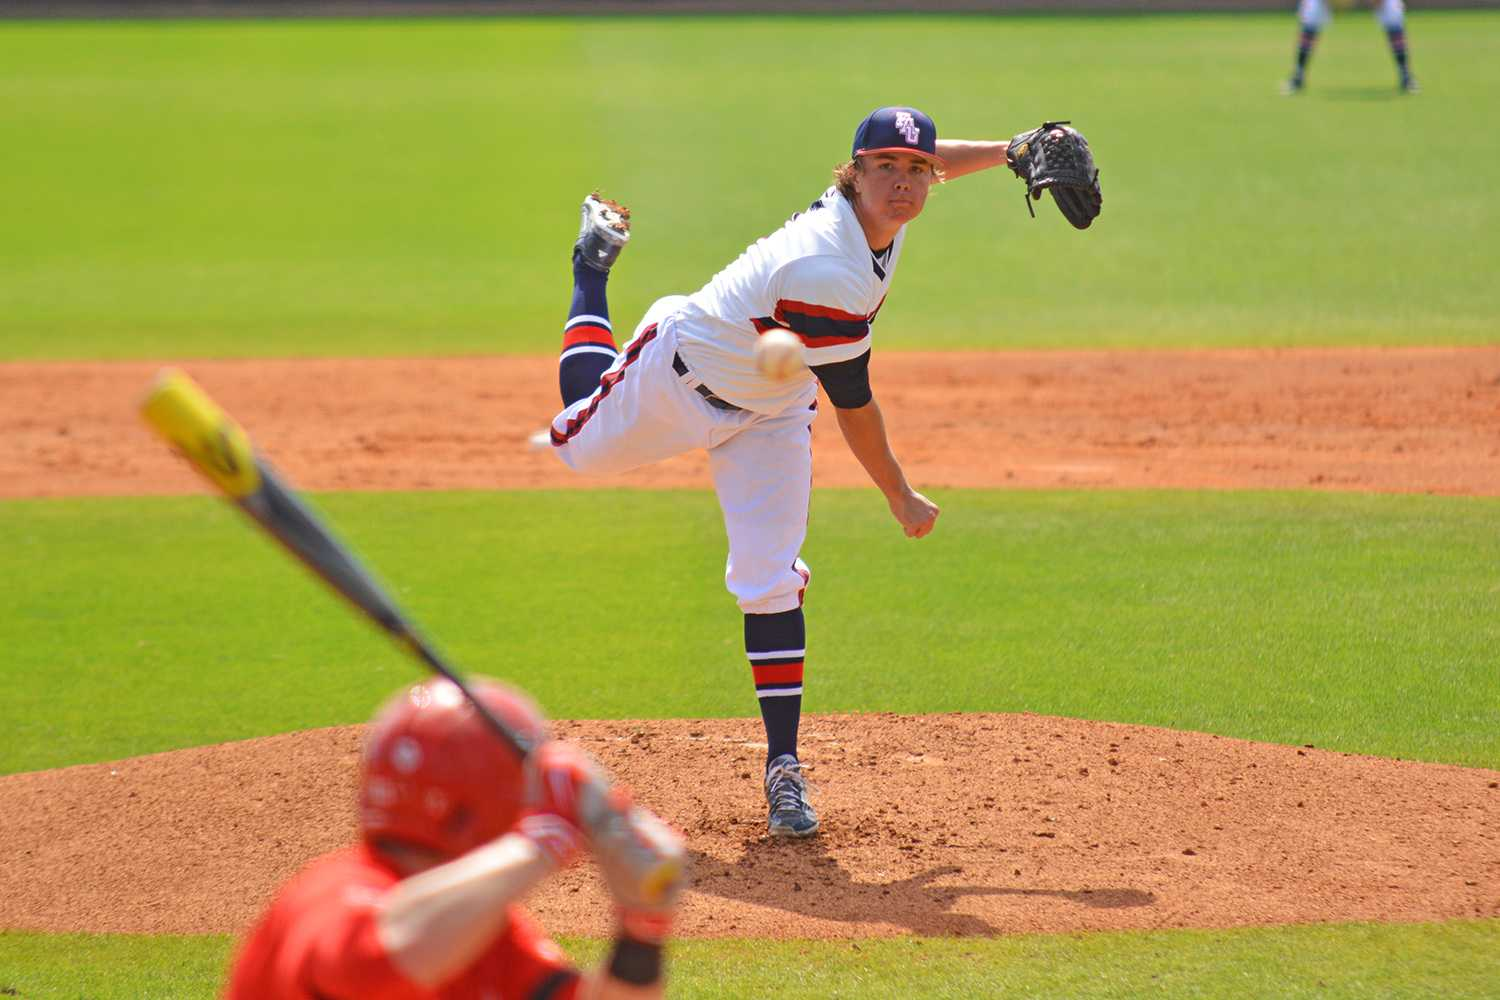 Sunday's starting pitcher Robbie Coursel (44) threw a no-hitter until the 5th inning to set the Owls up for their 2-1 victory.